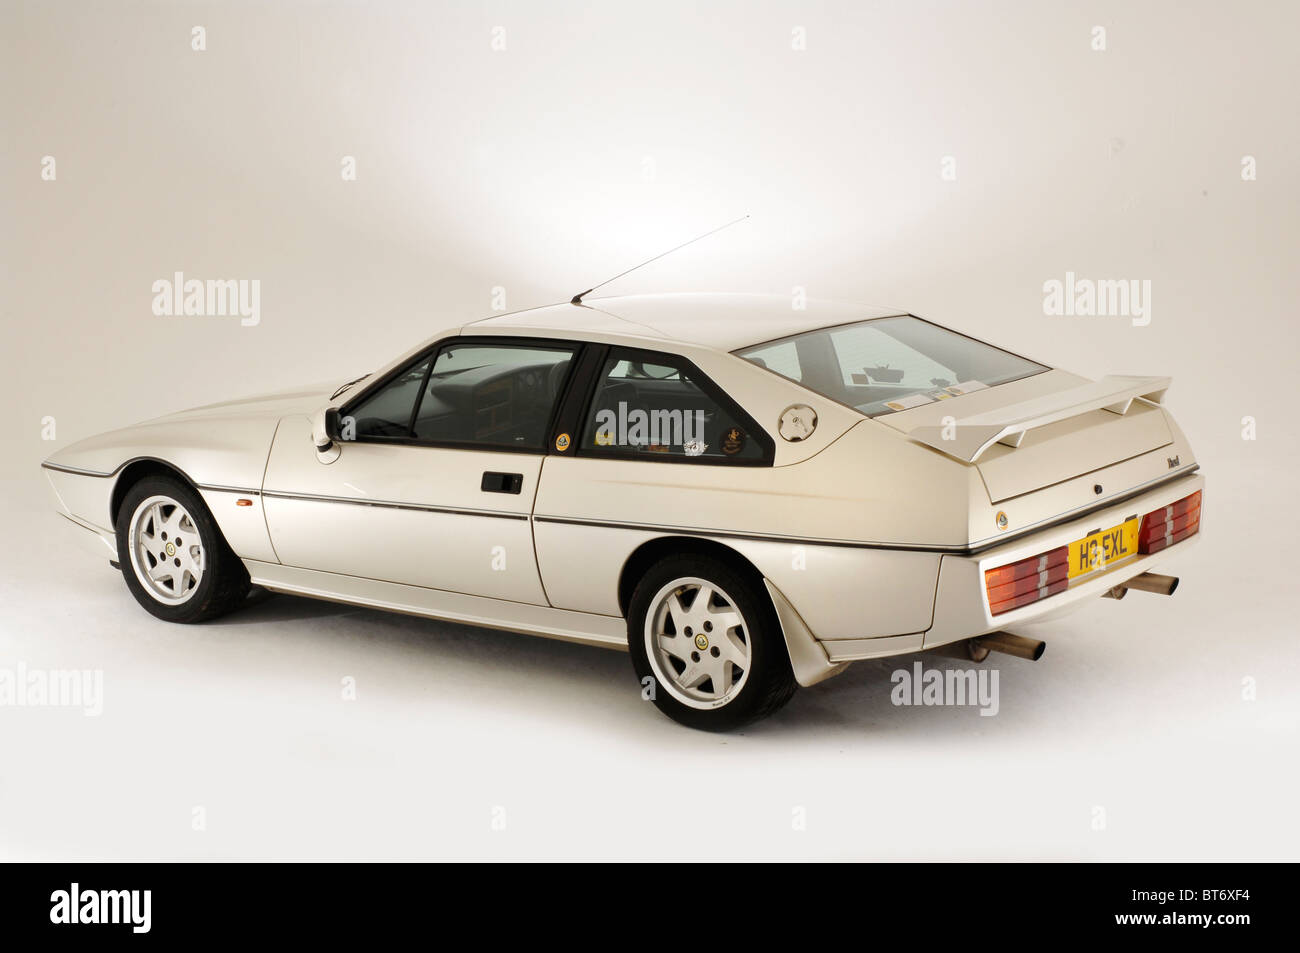 Lotus Excel 1987 - Stock Image